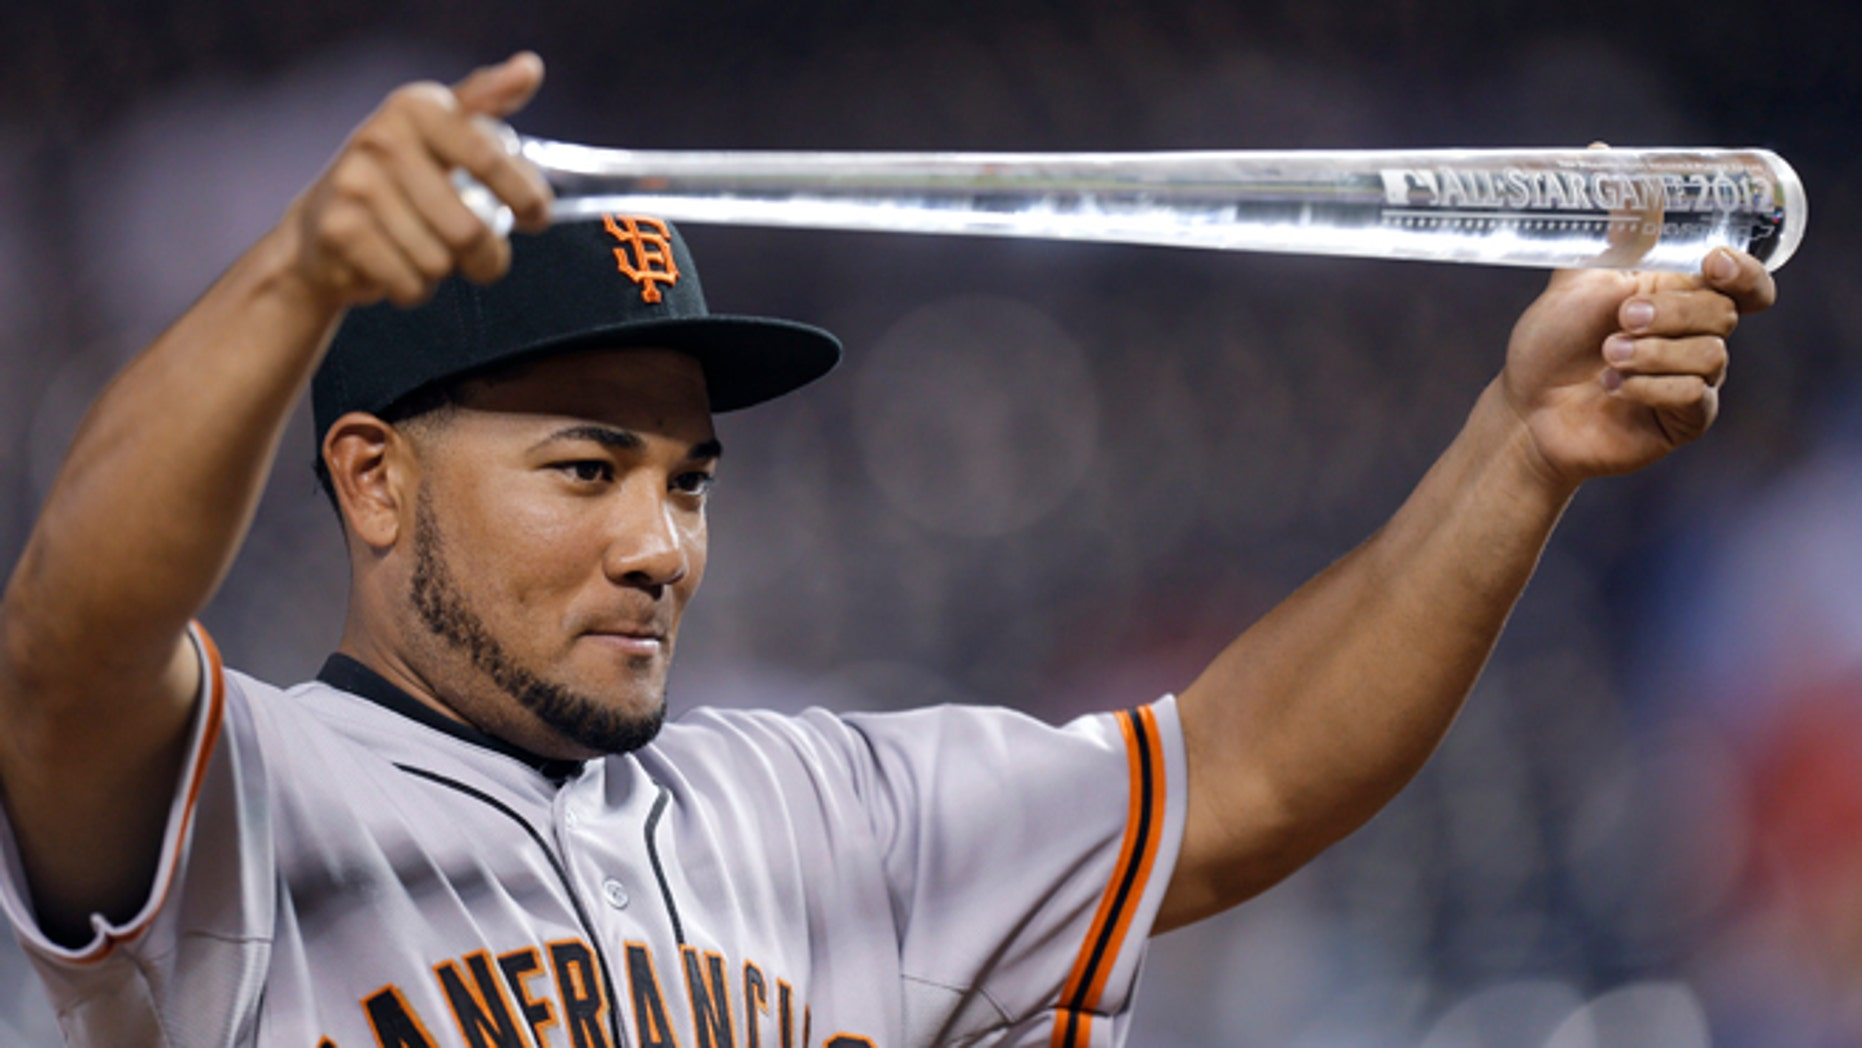 July 10, 2012: Melky Cabrera, of the San Francisco Giants, showing off his MVP trophy after the MLB All-Star baseball game in Kansas City, Mo.